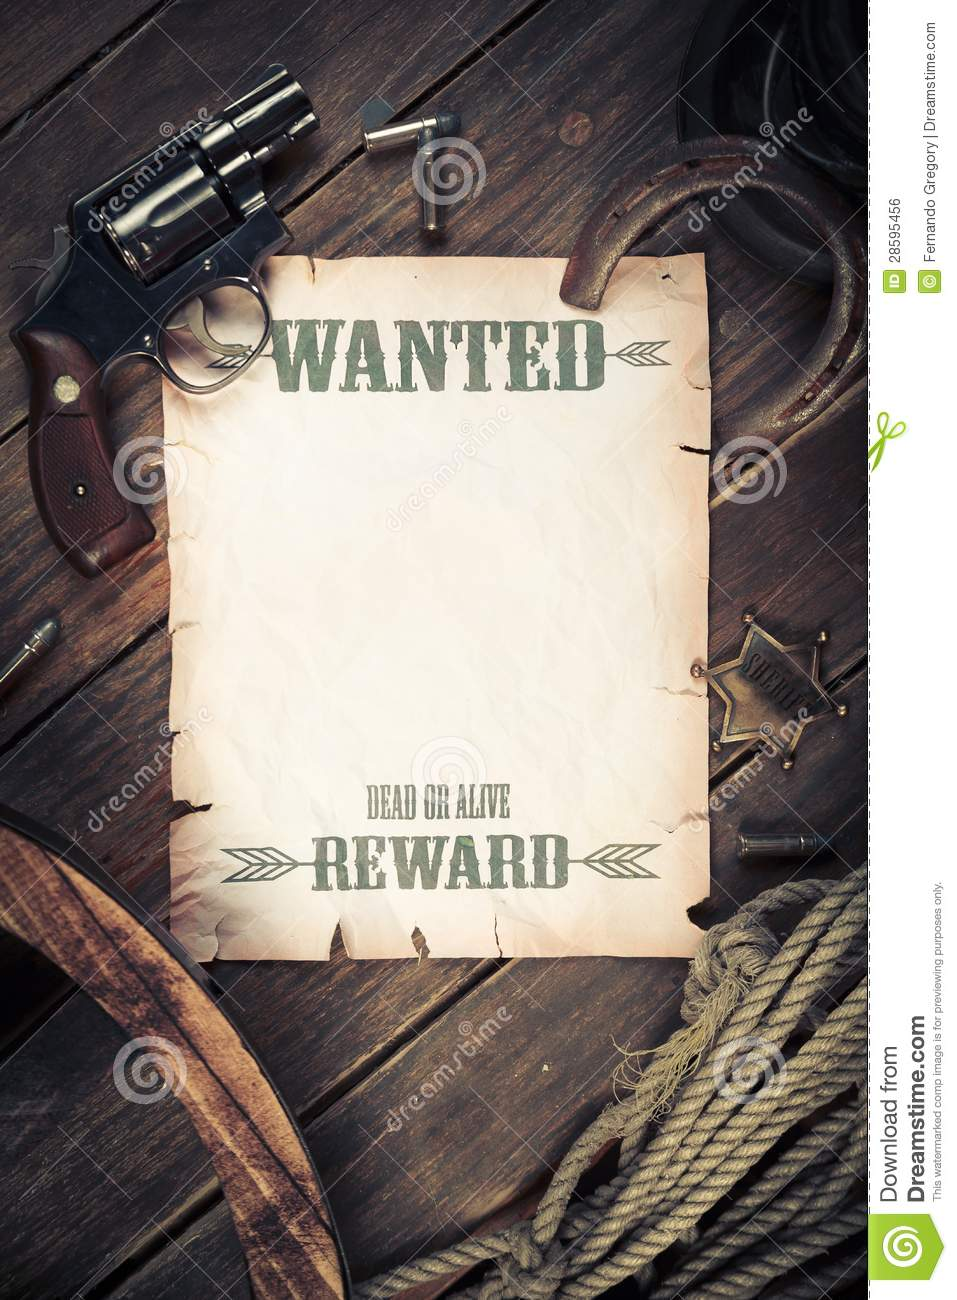 Old West Background With Wanted Poster Royalty Free Stock Image ...